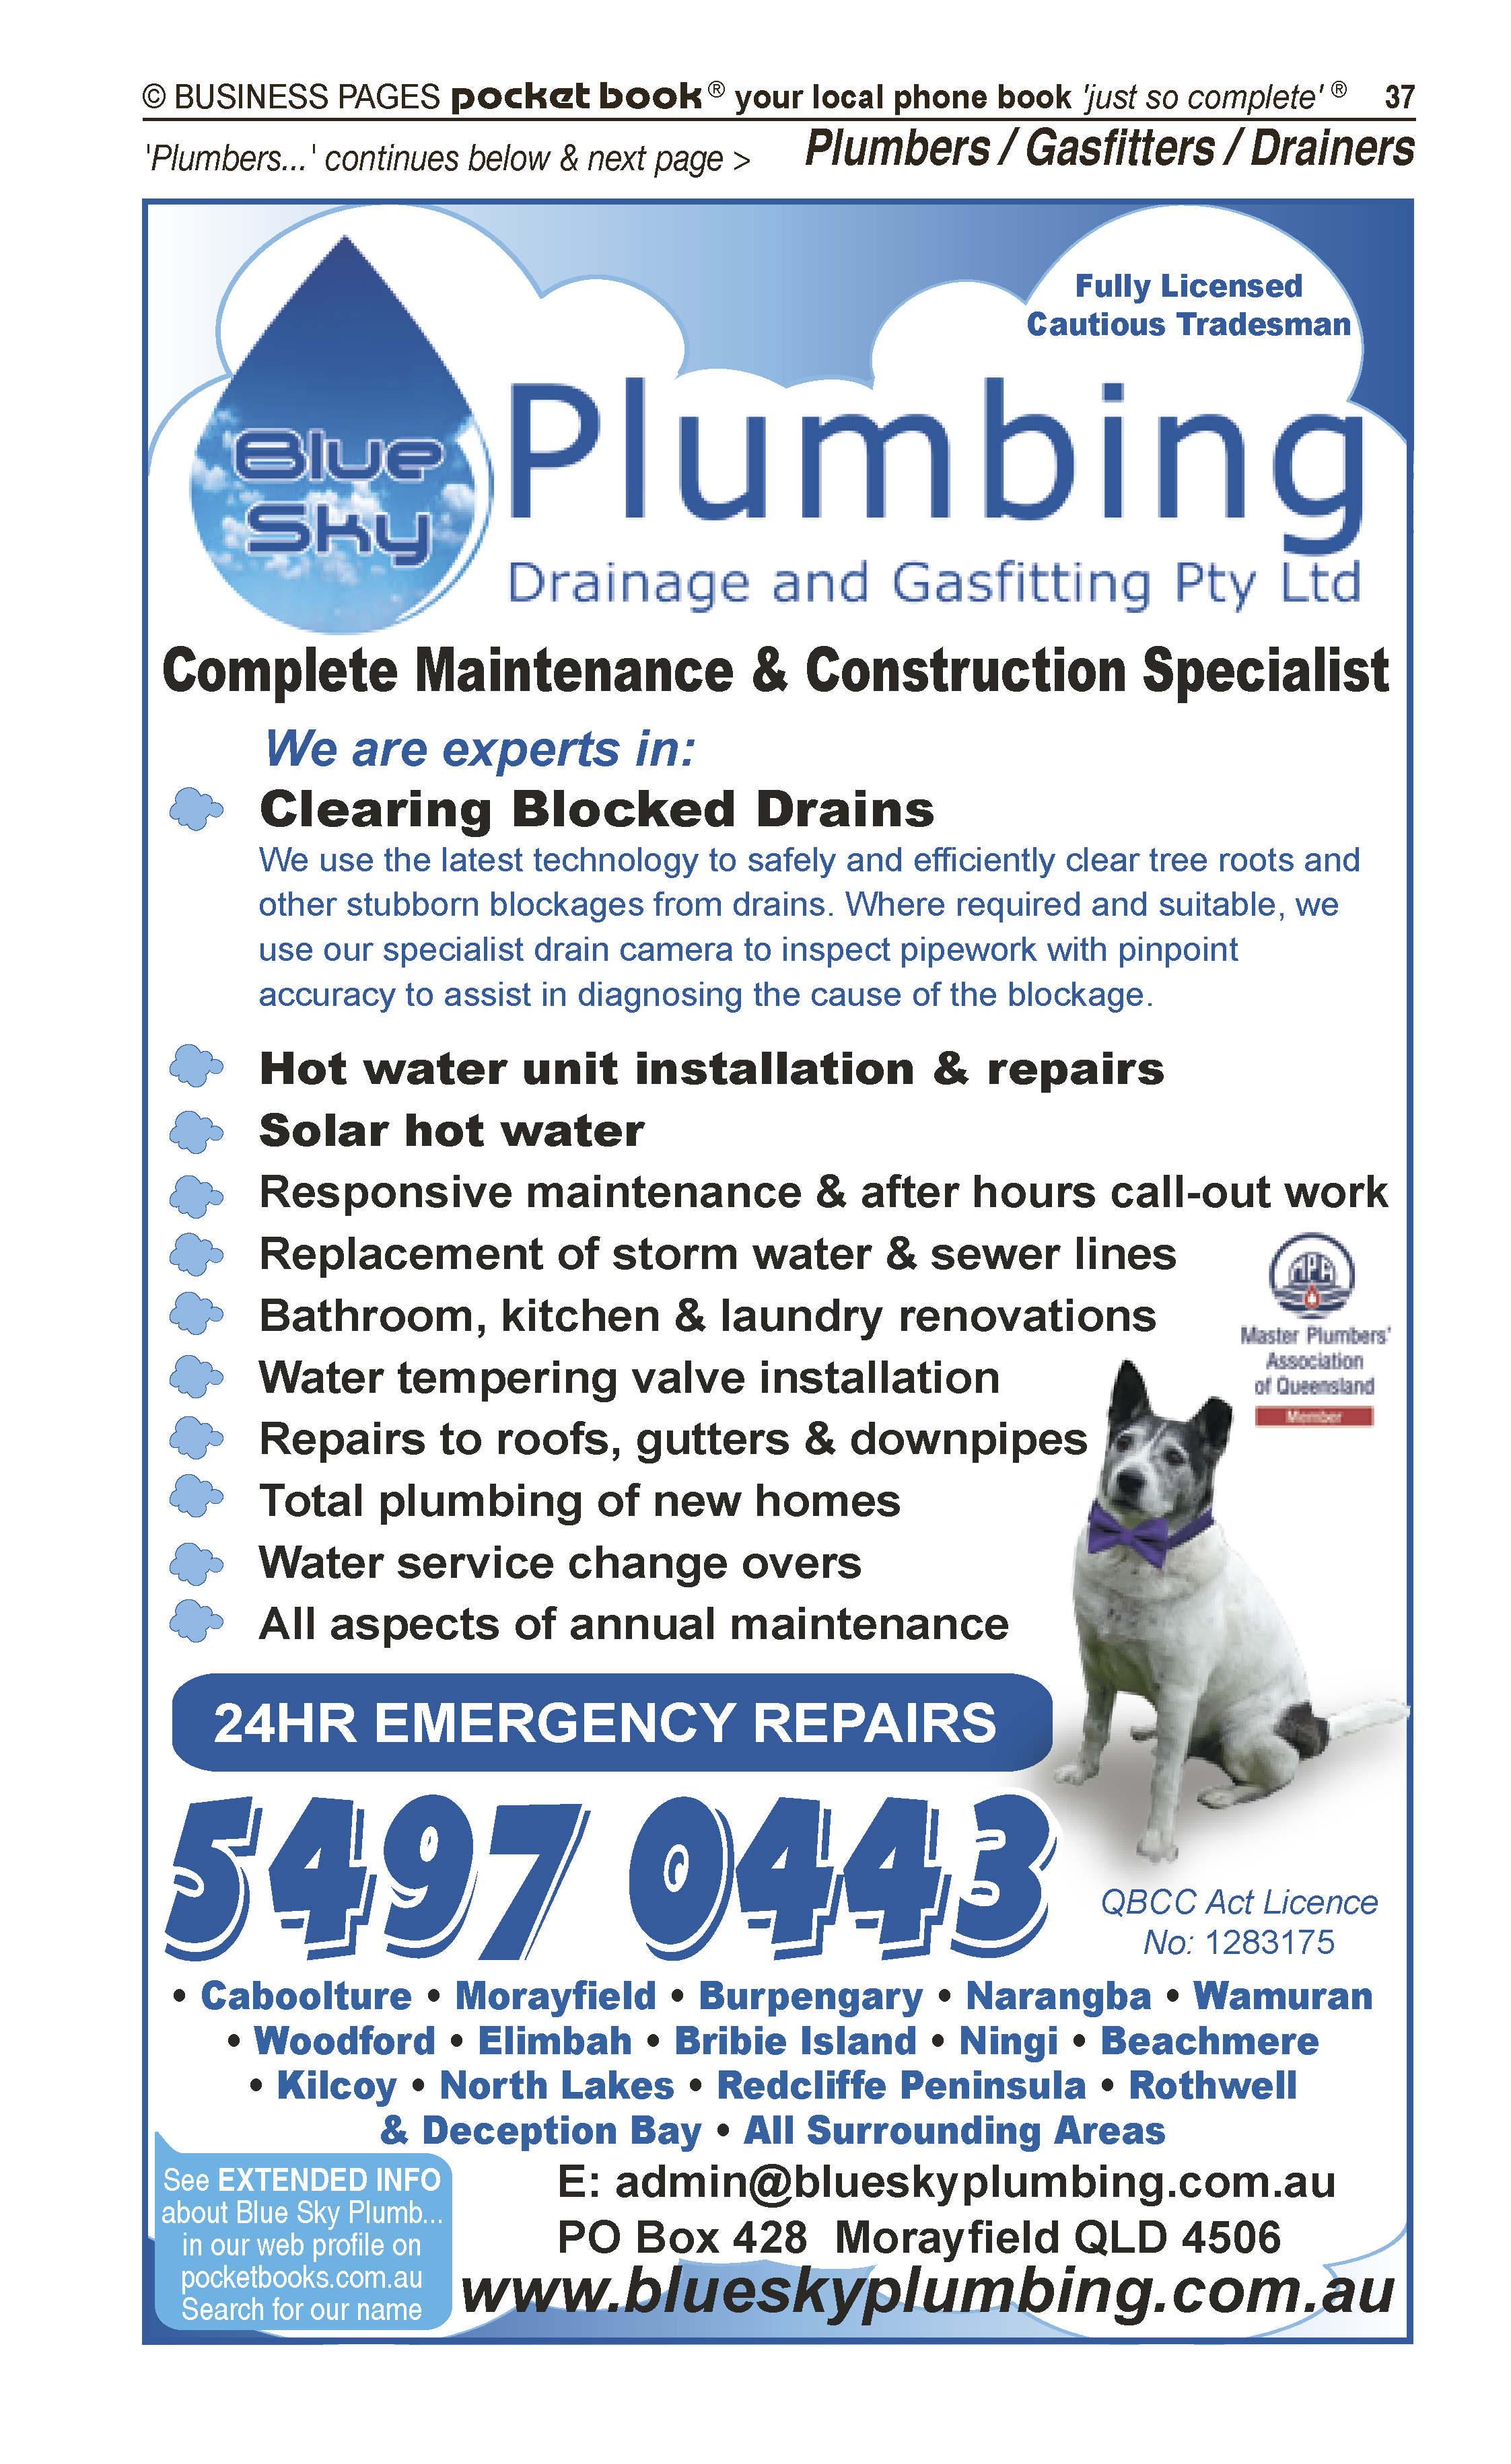 Blue Sky Plumbing Drainage & Gasfitting | Plumbers in Caboolture | PBezy Pocket Books local directories - page 37